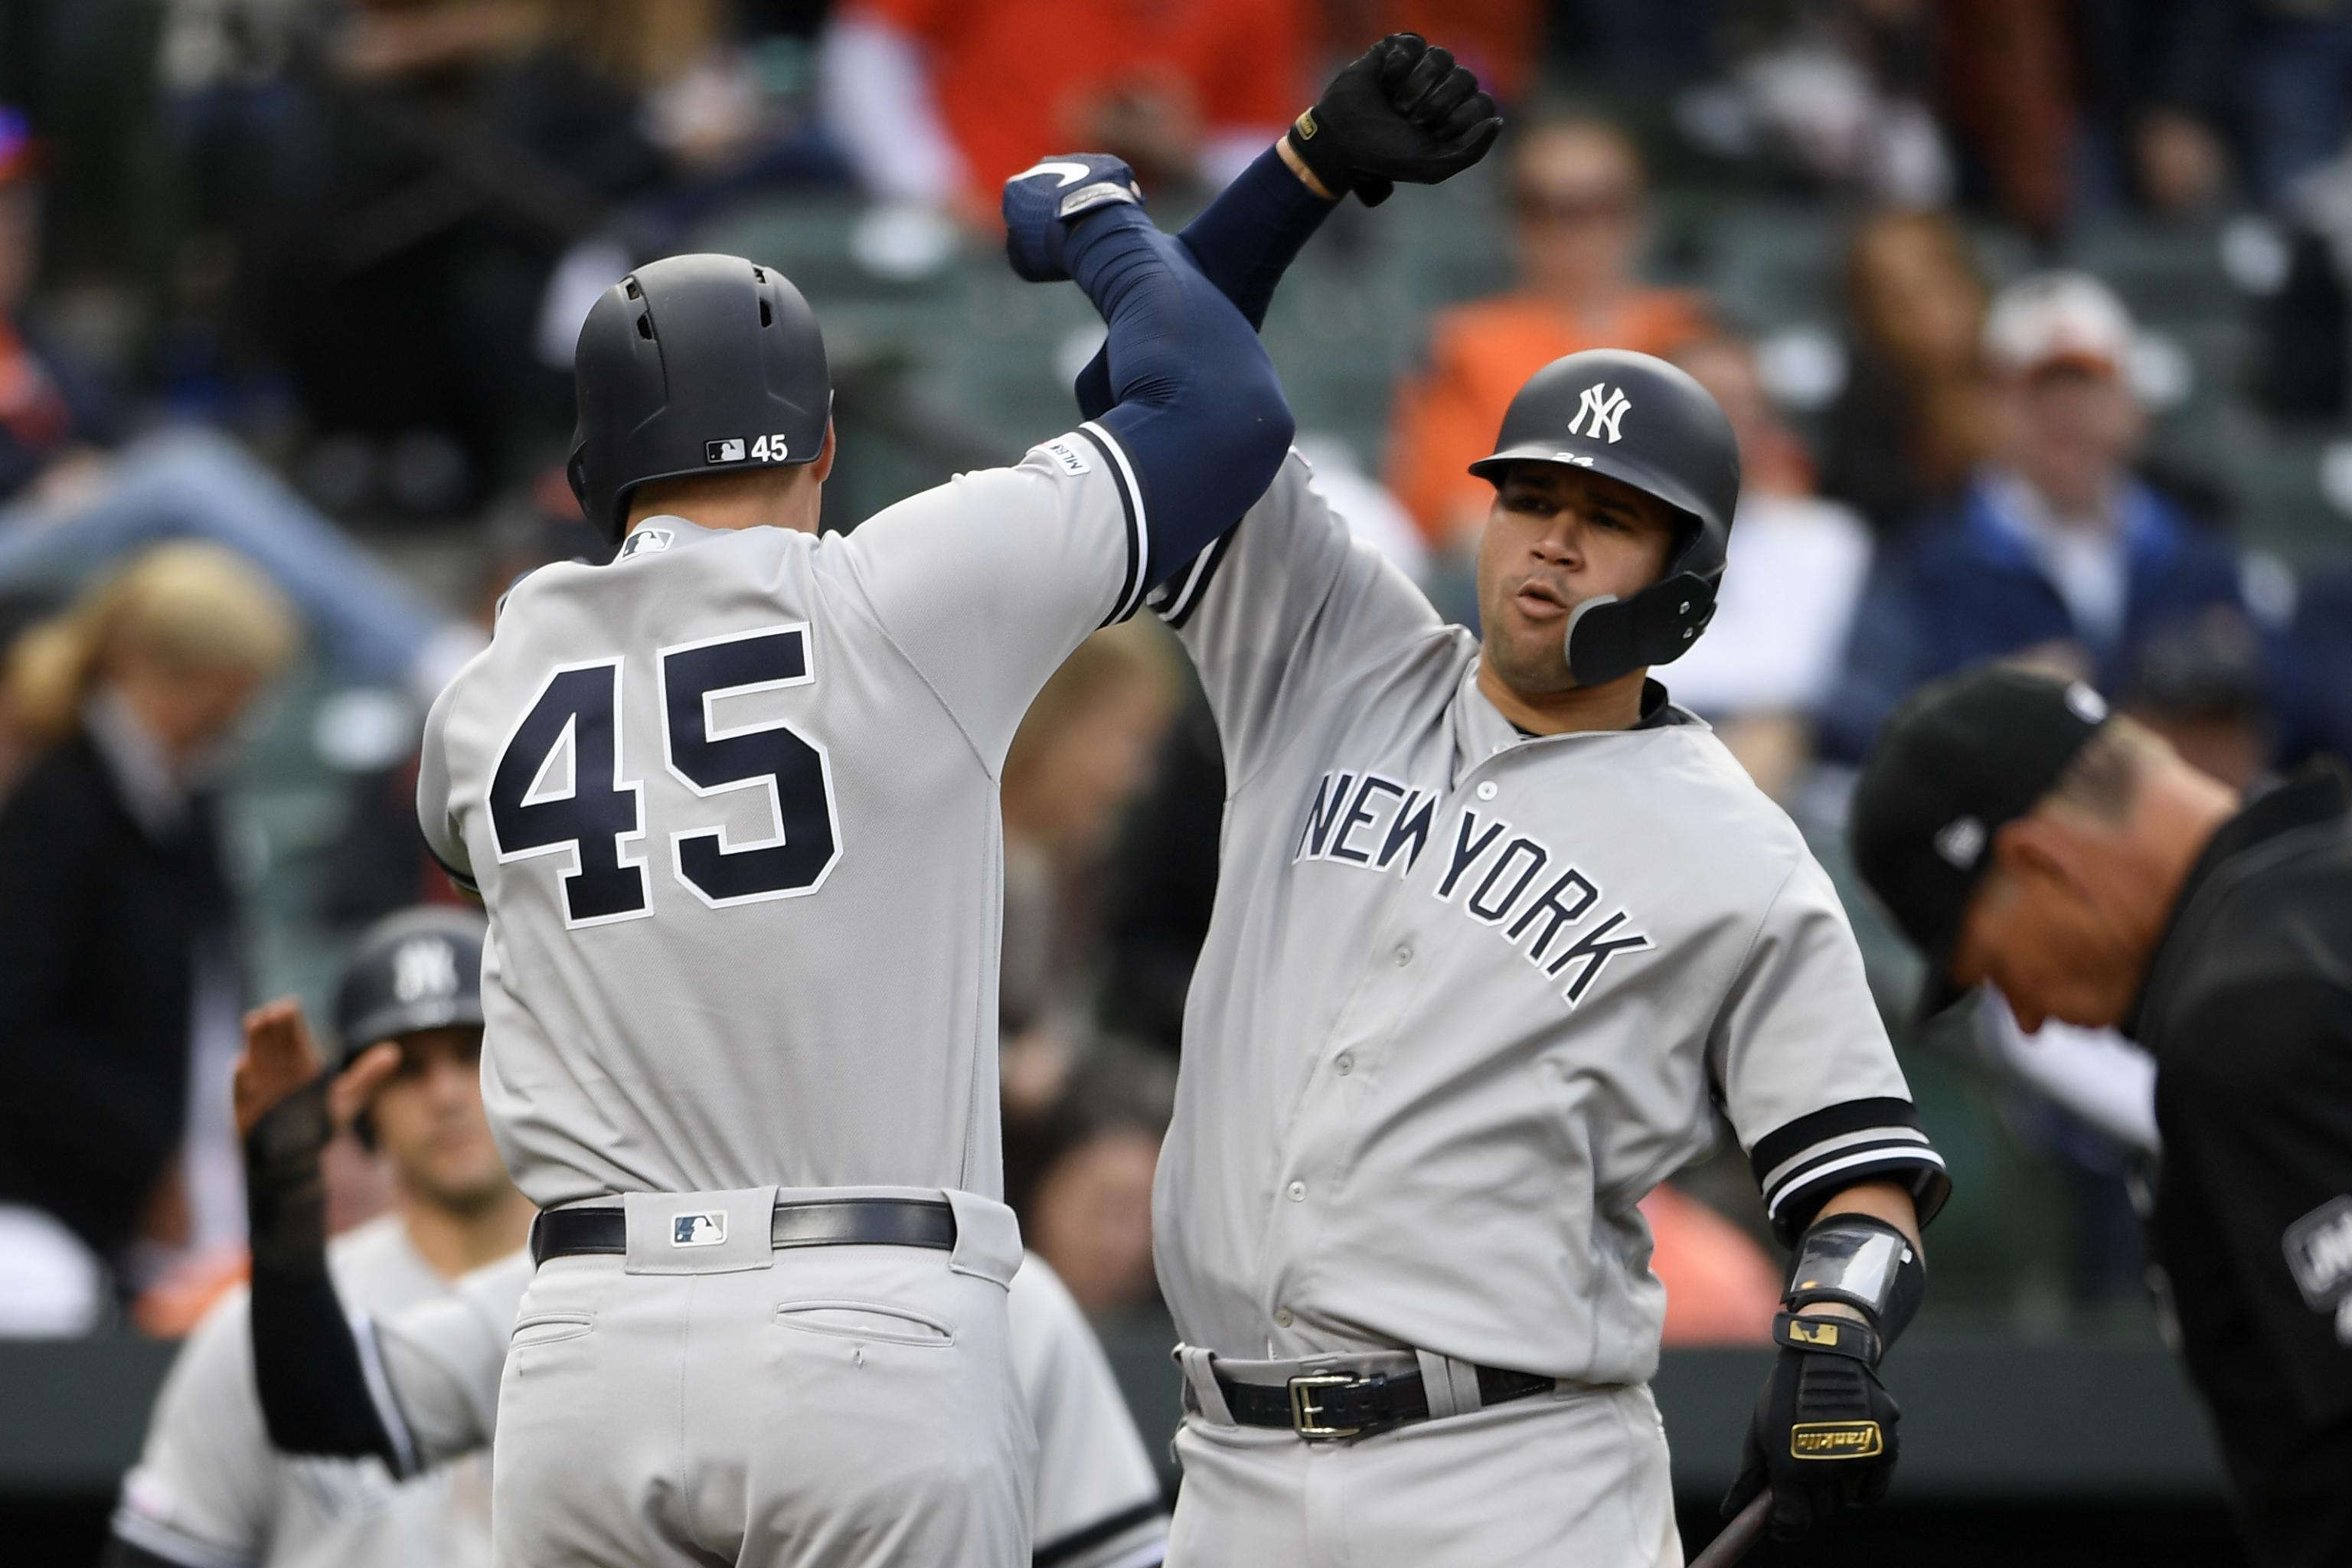 Yankees Break Team Record Of Most Consecutive Runs Scored By Home